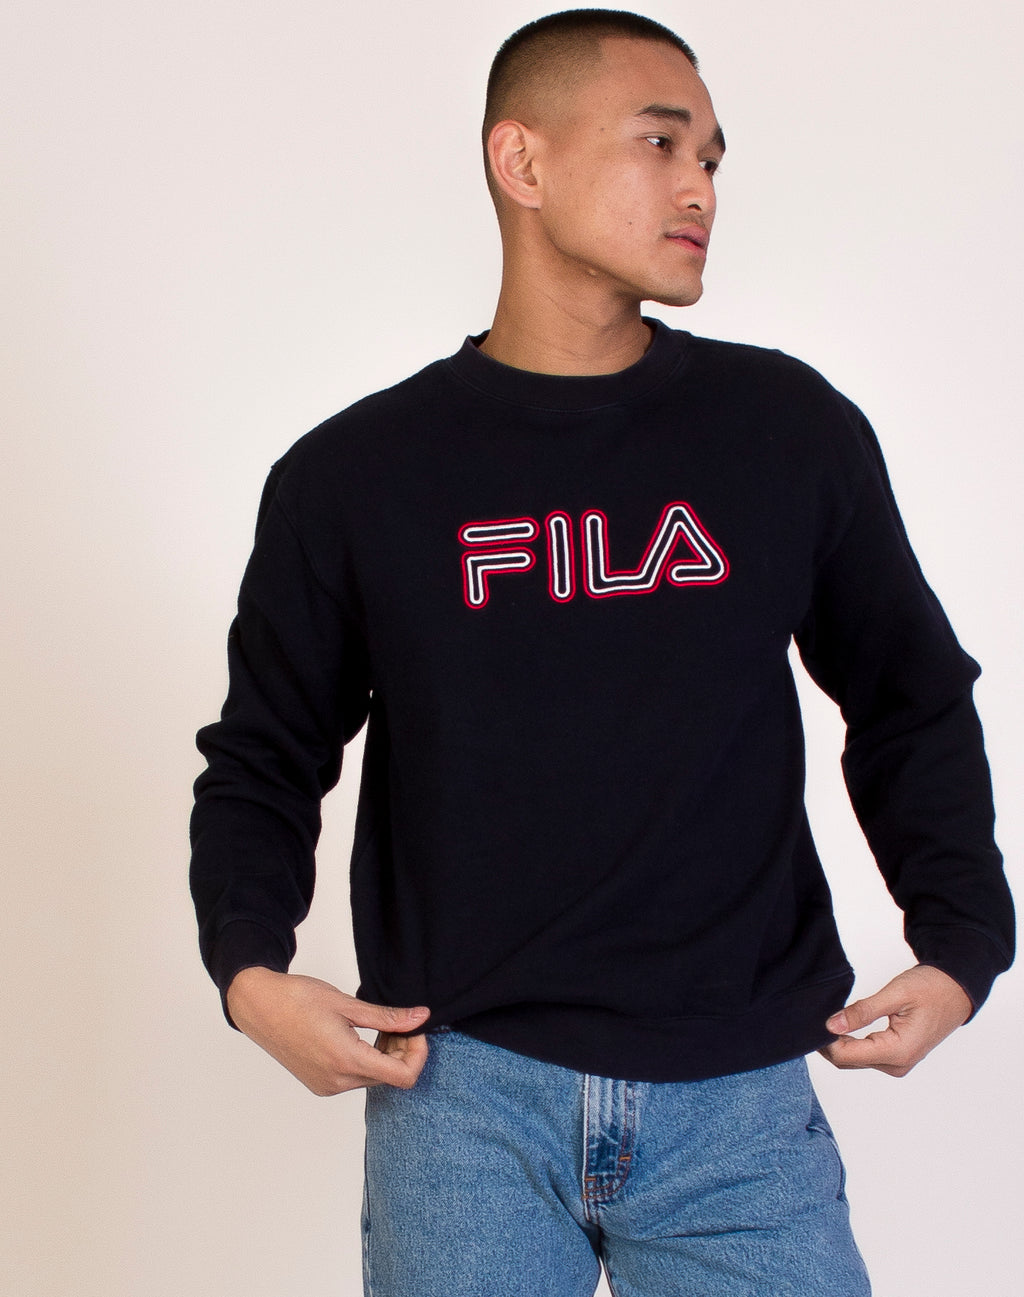 FILA NAVY LOGO SWEAT